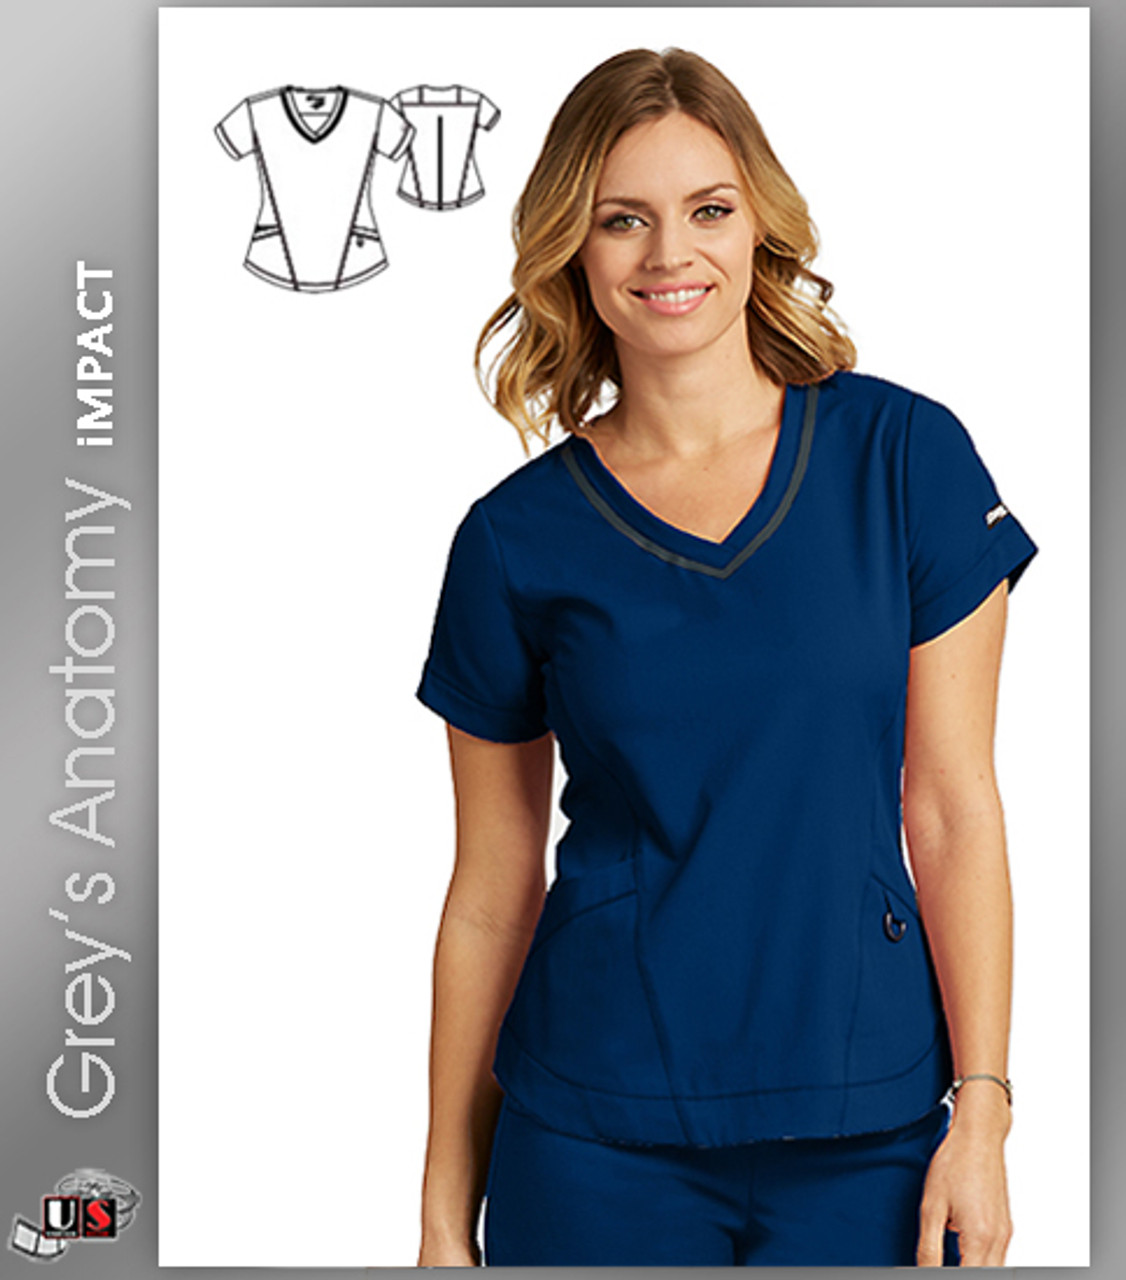 c0c151afe62 Grey's Anatomy™ iMPACT Women's Seamed V-Neck Solid Scrub Top - Dental  Supplies,Inc